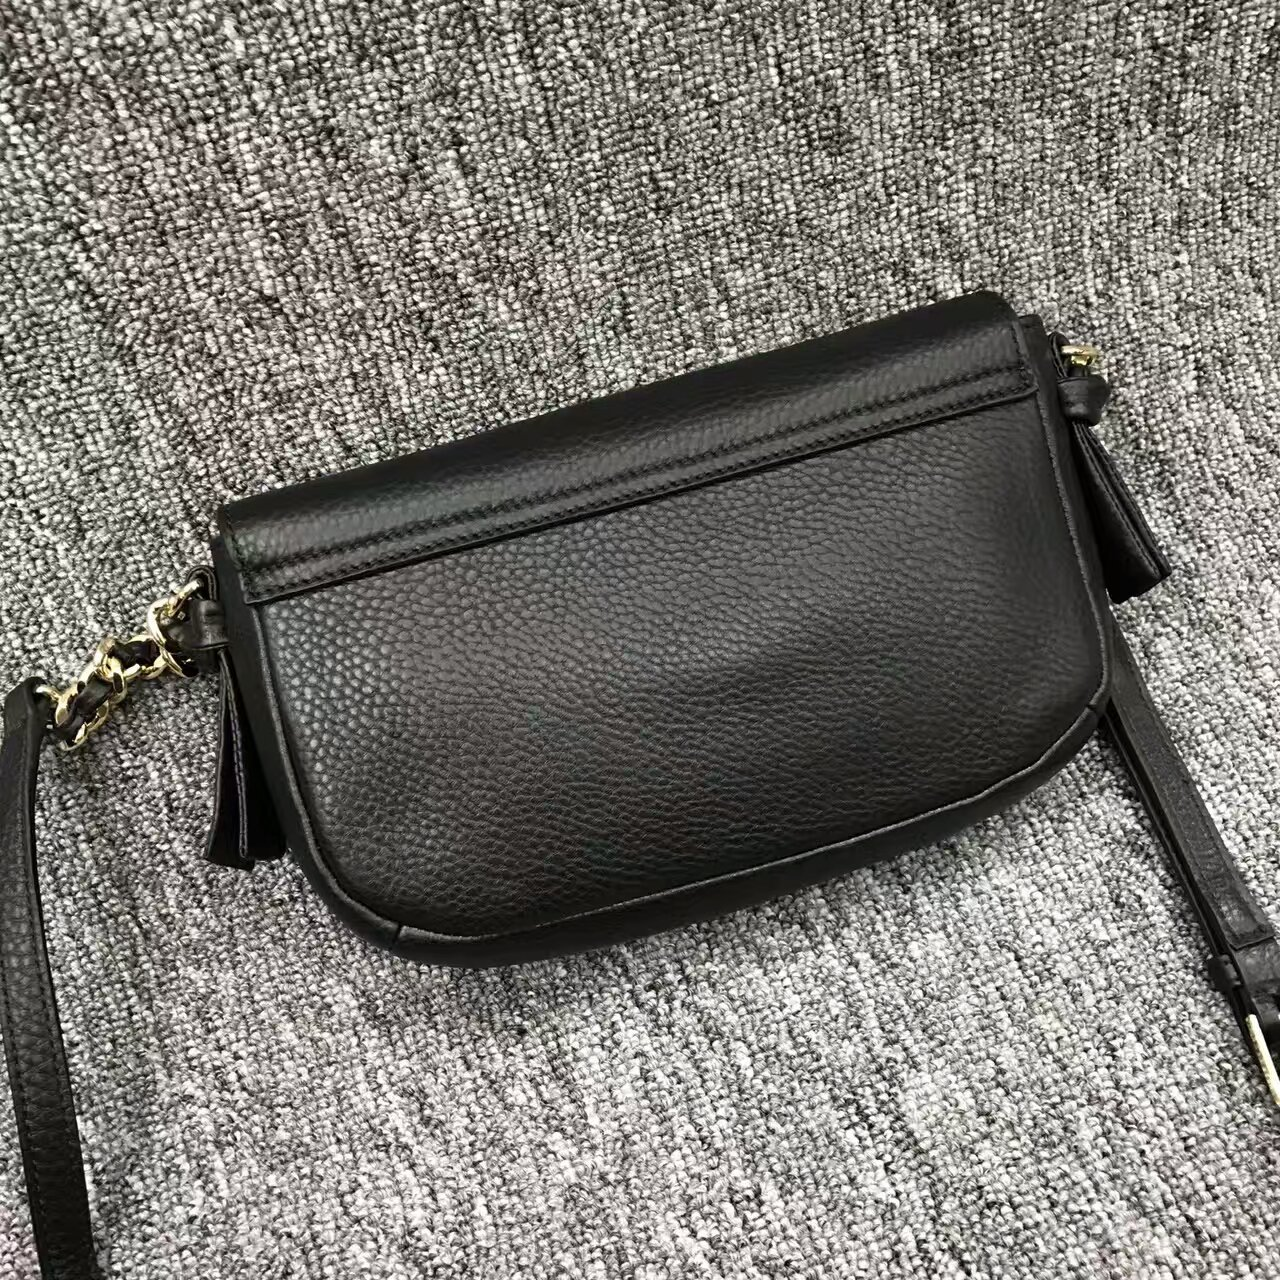 Tory Burch Black Harper Mini Cross Body Bag